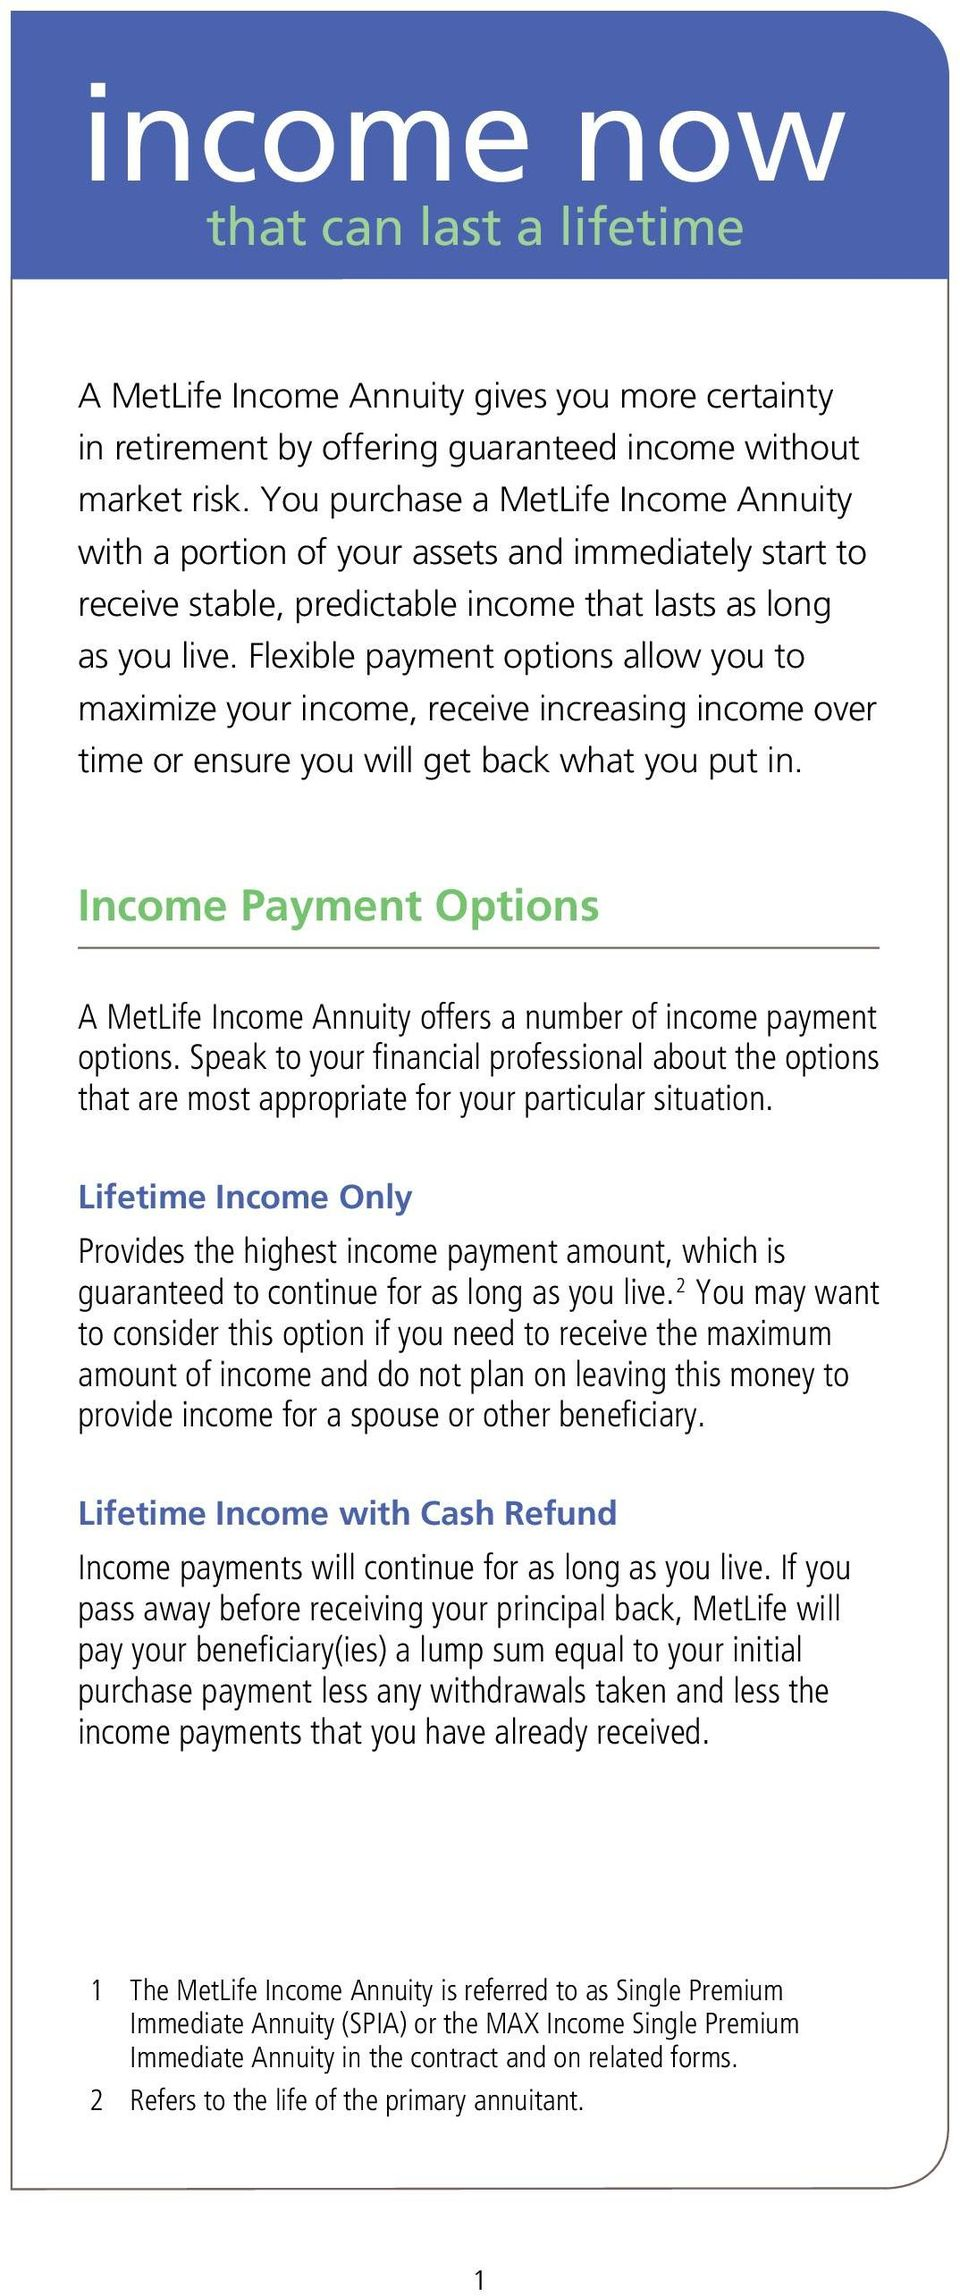 Flexible payment options allow you to maximize your income, receive increasing income over time or ensure you will get back what you put in.